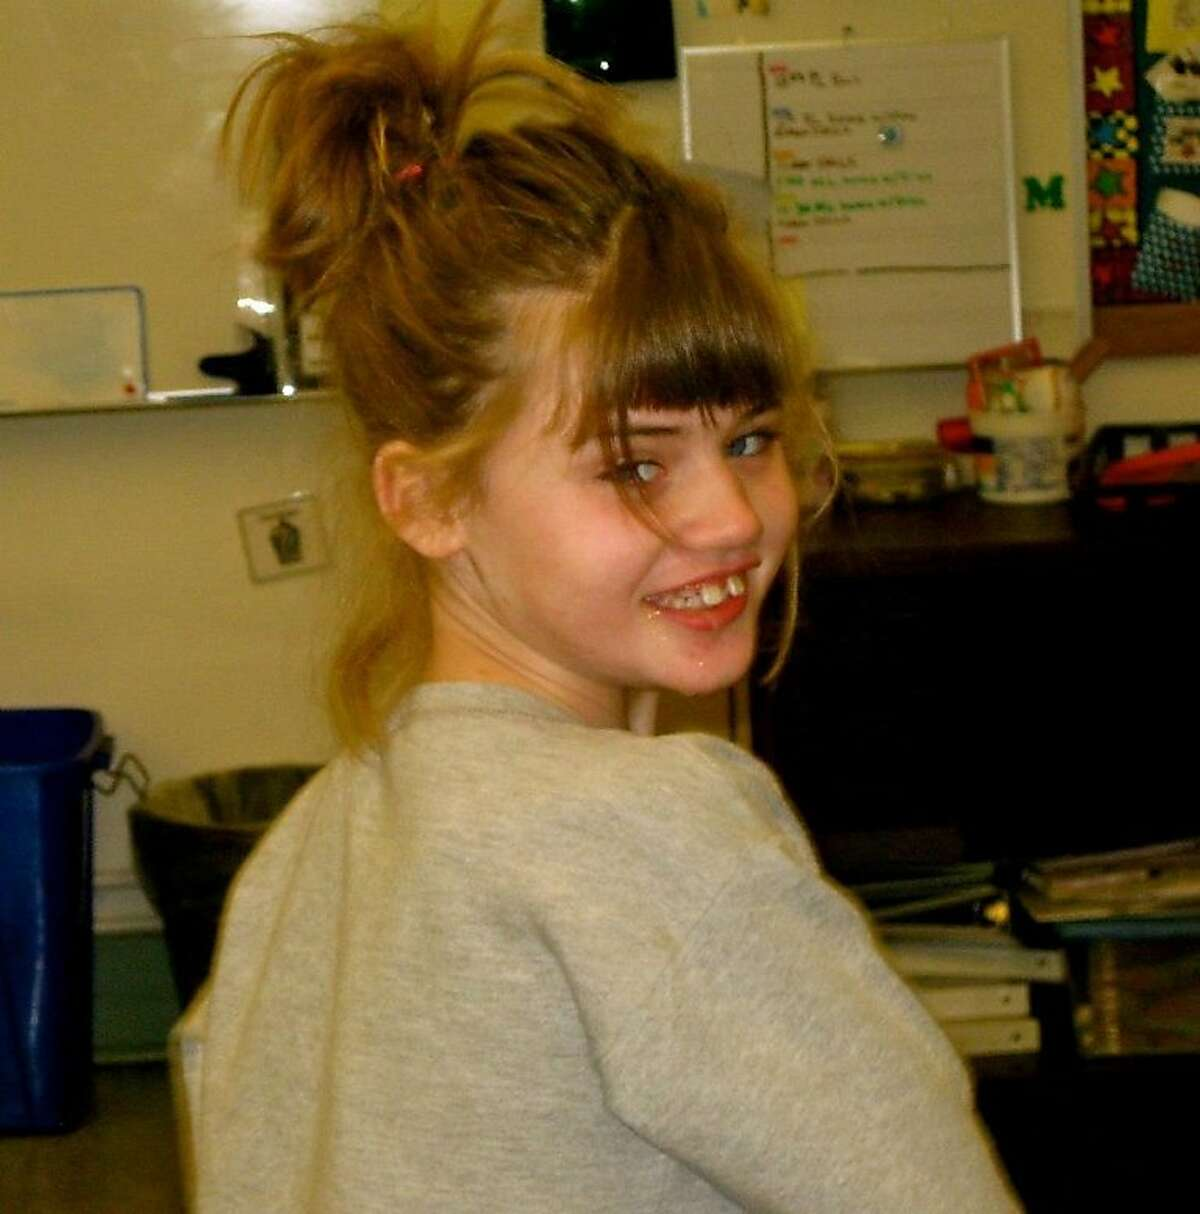 Mikaela Lynch, 9, of San Francisco went missing Sunday afternoon at her vacation home in Lake County.